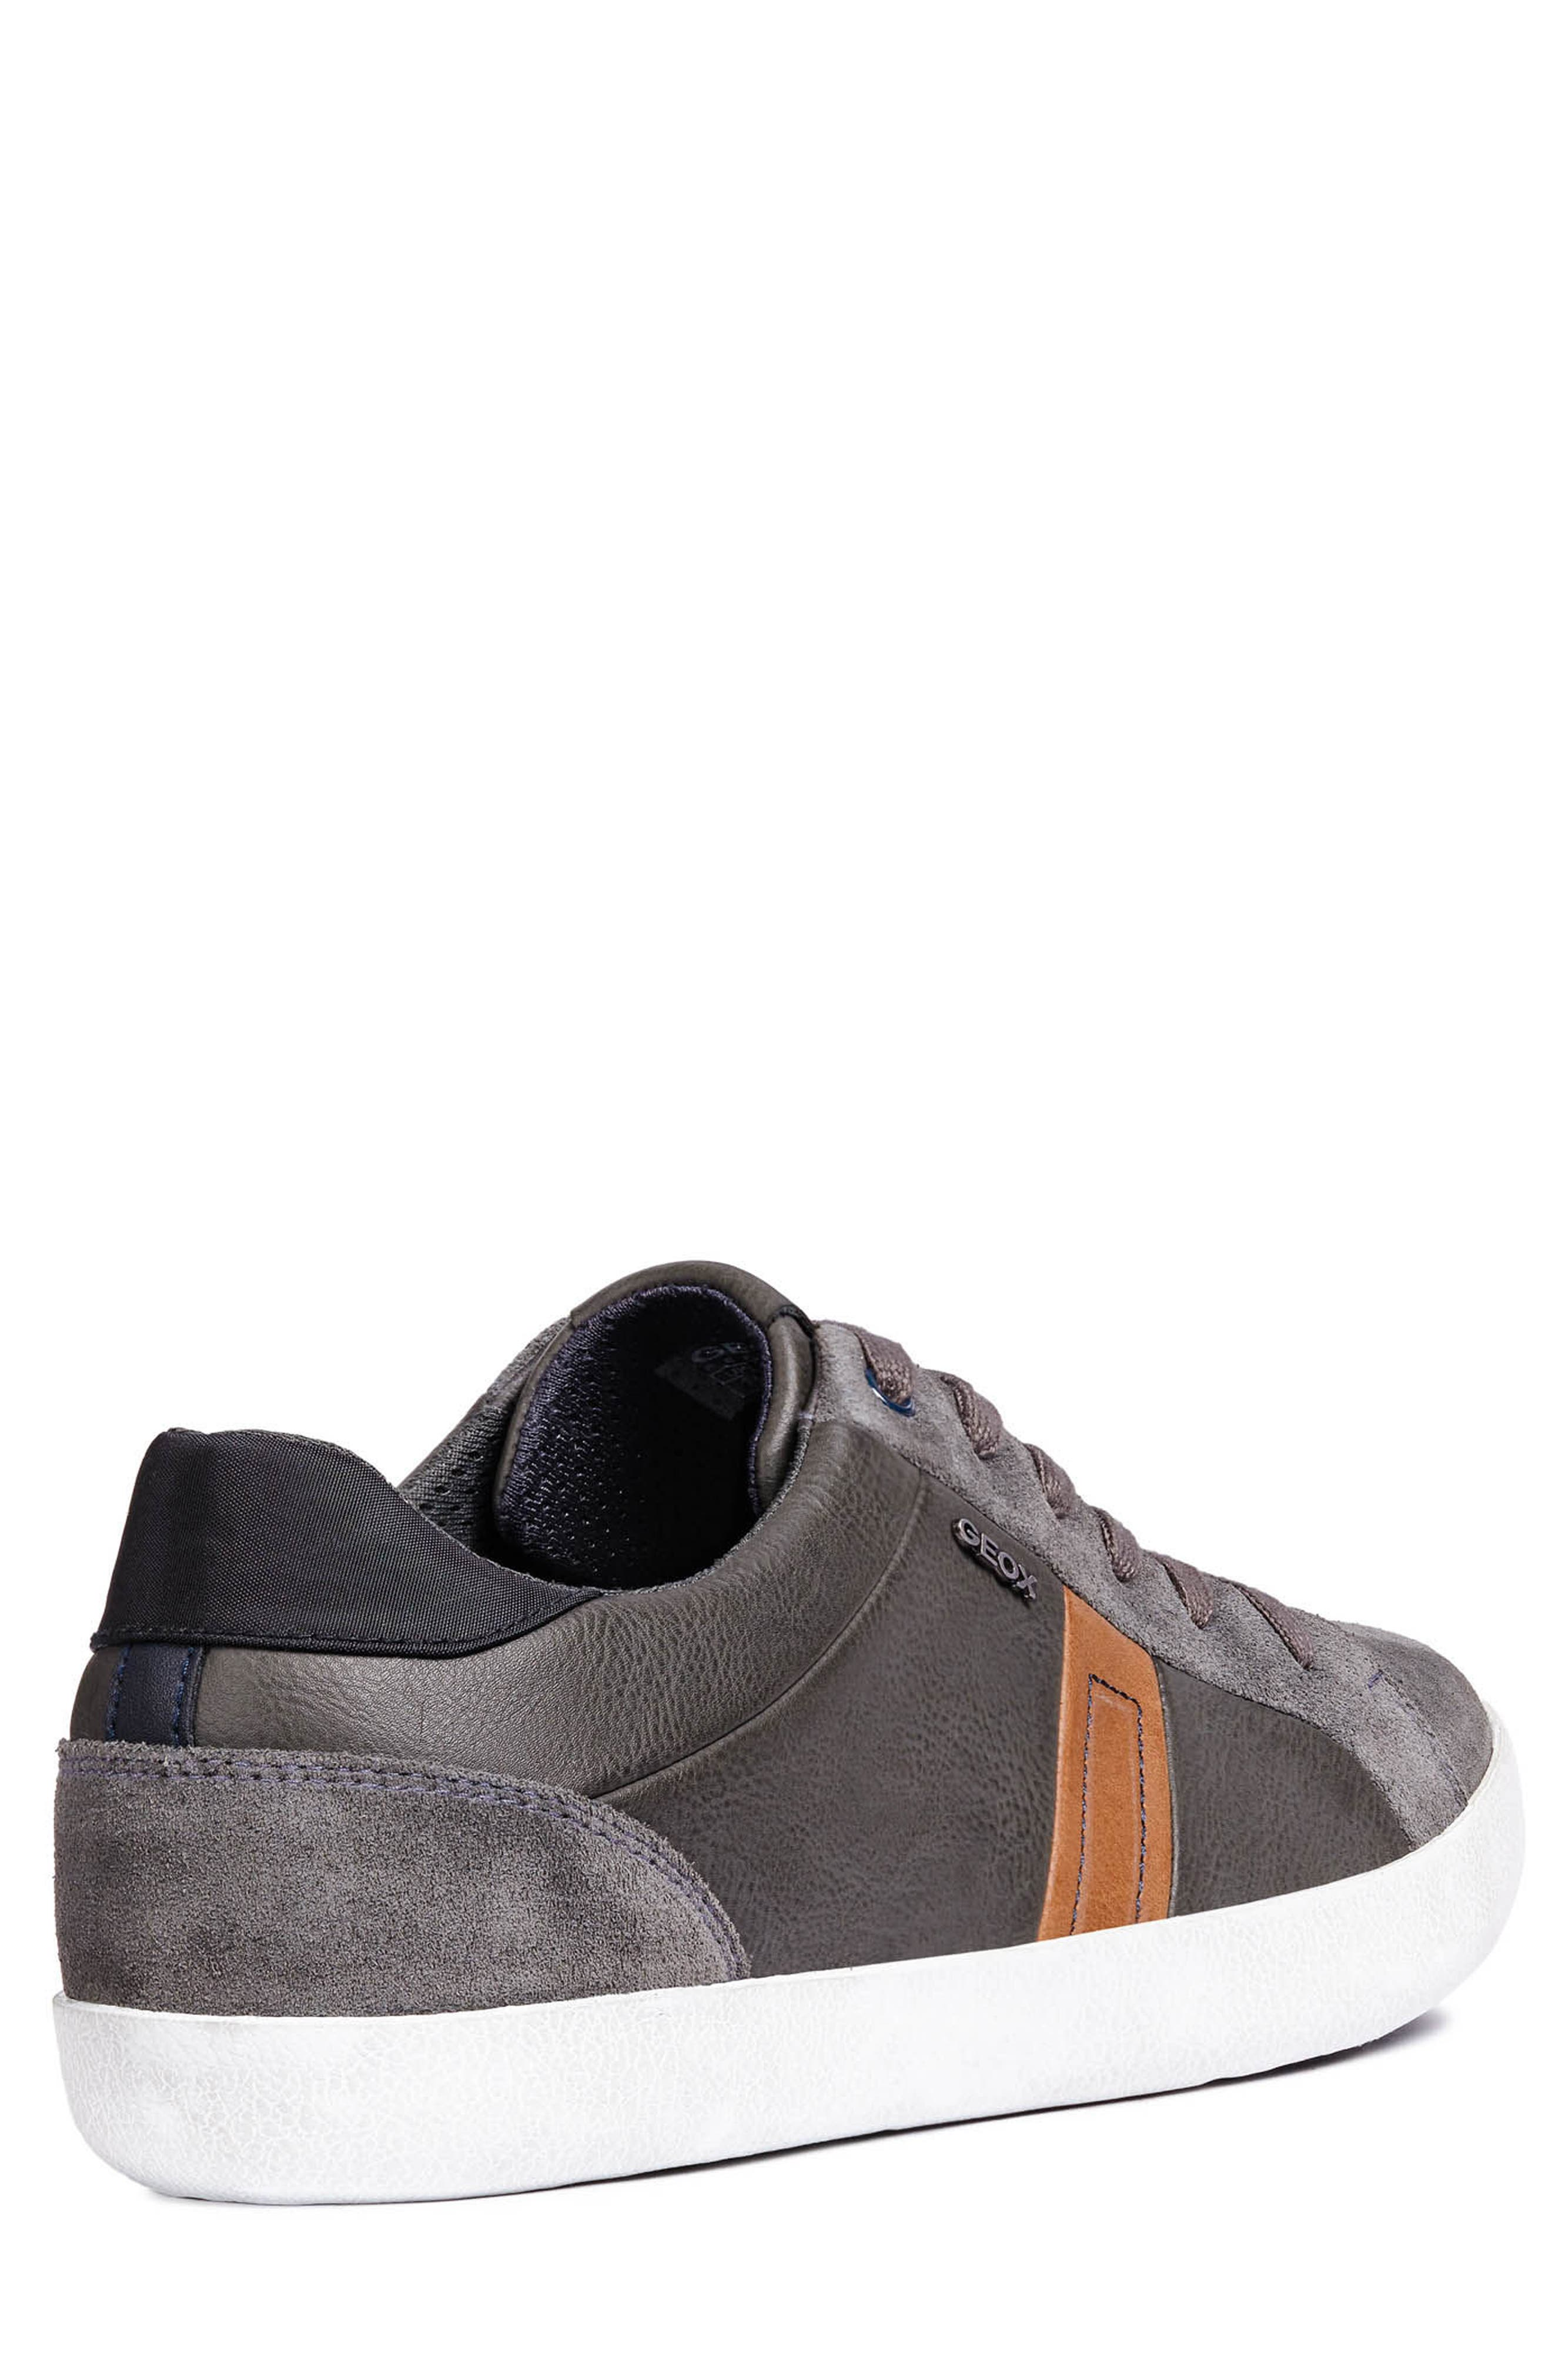 Box 40 Low Top Sneaker,                             Alternate thumbnail 2, color,                             ANTHRACITE LEATHER